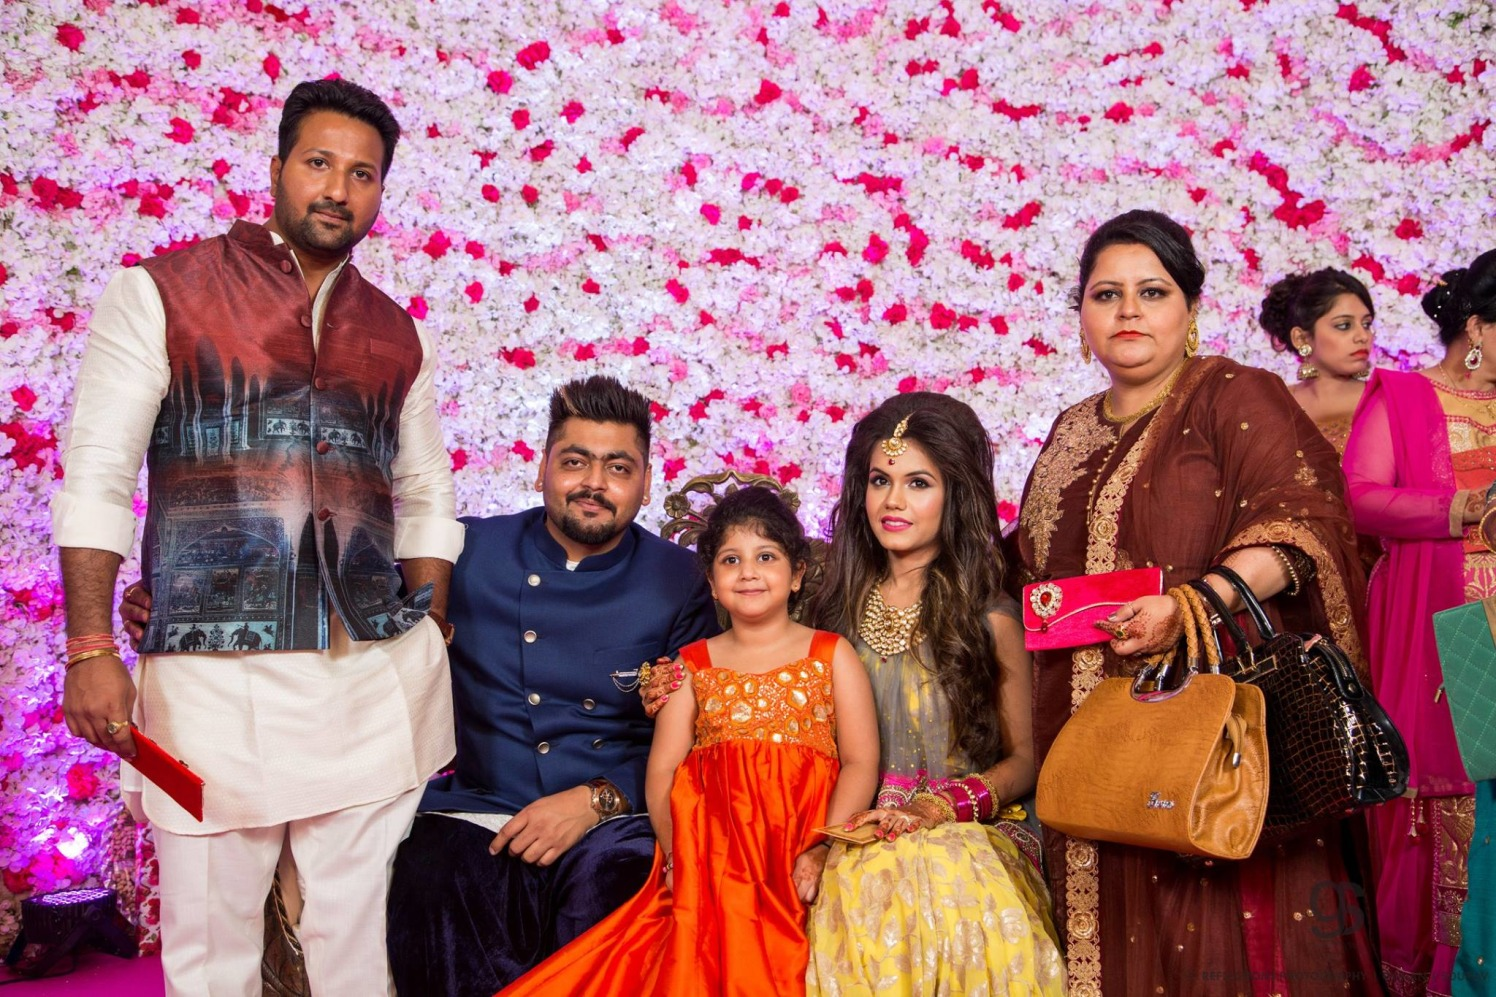 Only family fair! by Reflections Photography Wedding-photography | Weddings Photos & Ideas